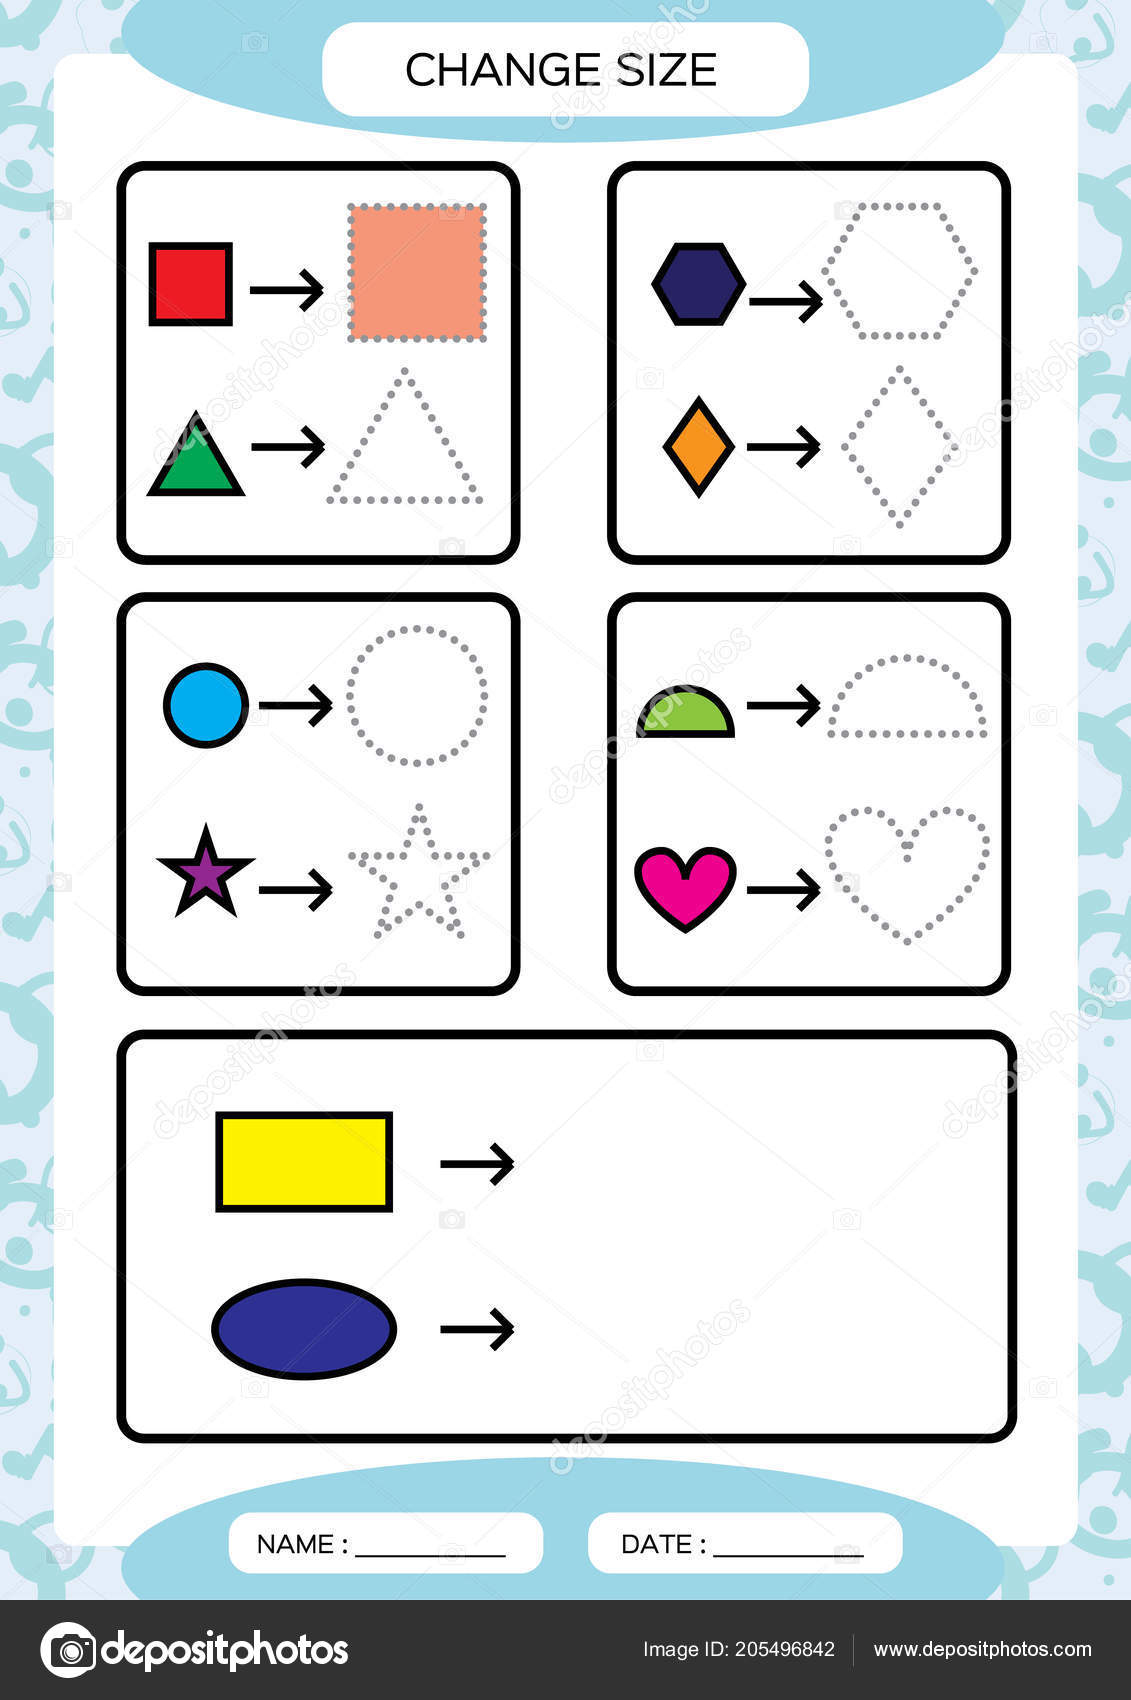 Practice Drawing Shapes For Preschoolers